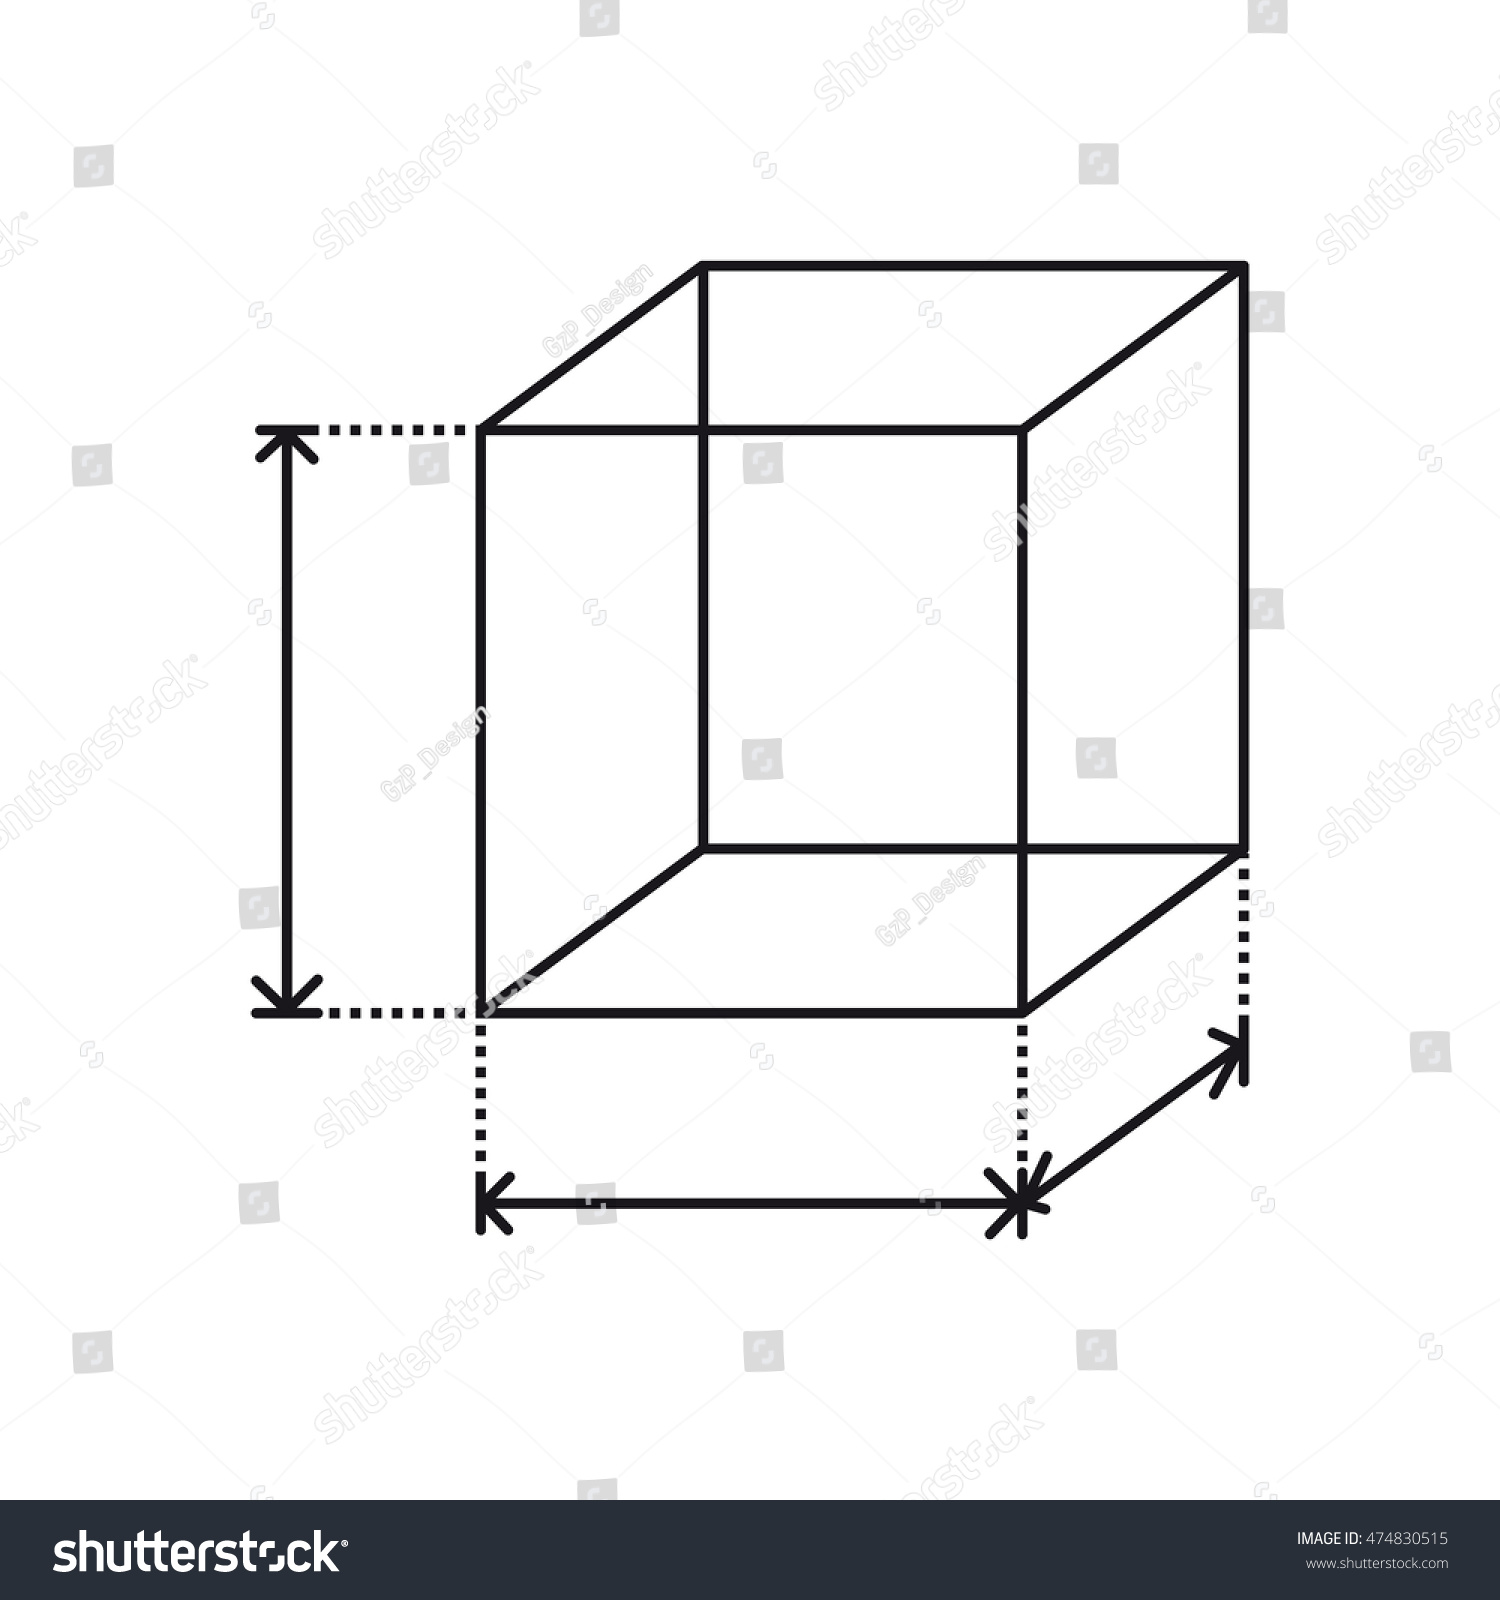 height width icon area size dimension stock vector 474830515 shutterstock. Black Bedroom Furniture Sets. Home Design Ideas